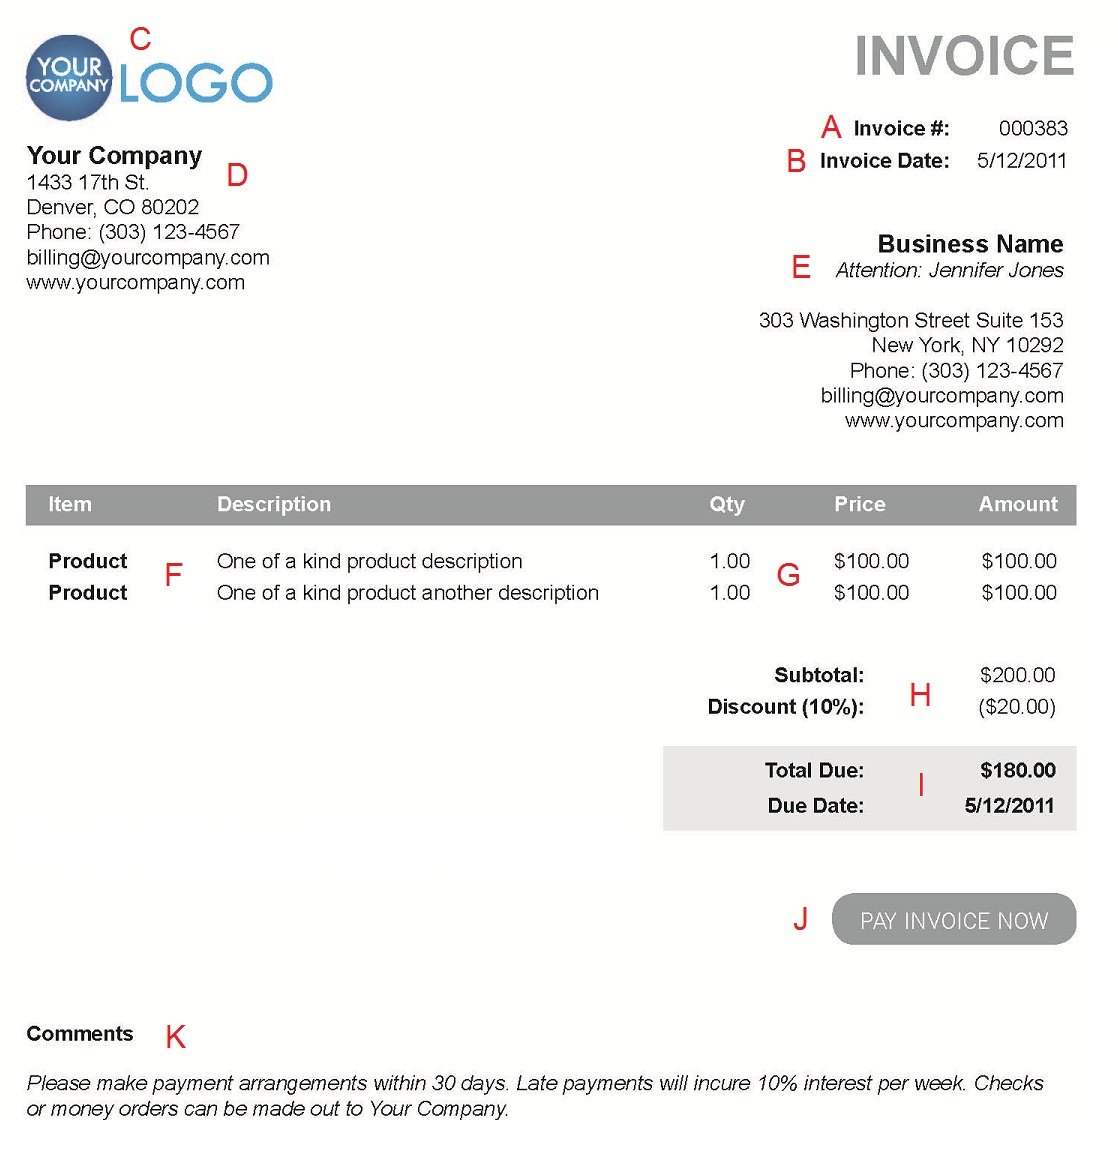 Shopdesignsus  Terrific The  Different Sections Of An Electronic Payment Invoice With Magnificent A  With Adorable Invoice Excel Template Free Download Also Invoice Auditing In Addition Invoice Program Free Download And Close Invoice As Well As Microsoft Service Invoice Template Additionally Sample Template For Invoice From Paysimplecom With Shopdesignsus  Magnificent The  Different Sections Of An Electronic Payment Invoice With Adorable A  And Terrific Invoice Excel Template Free Download Also Invoice Auditing In Addition Invoice Program Free Download From Paysimplecom